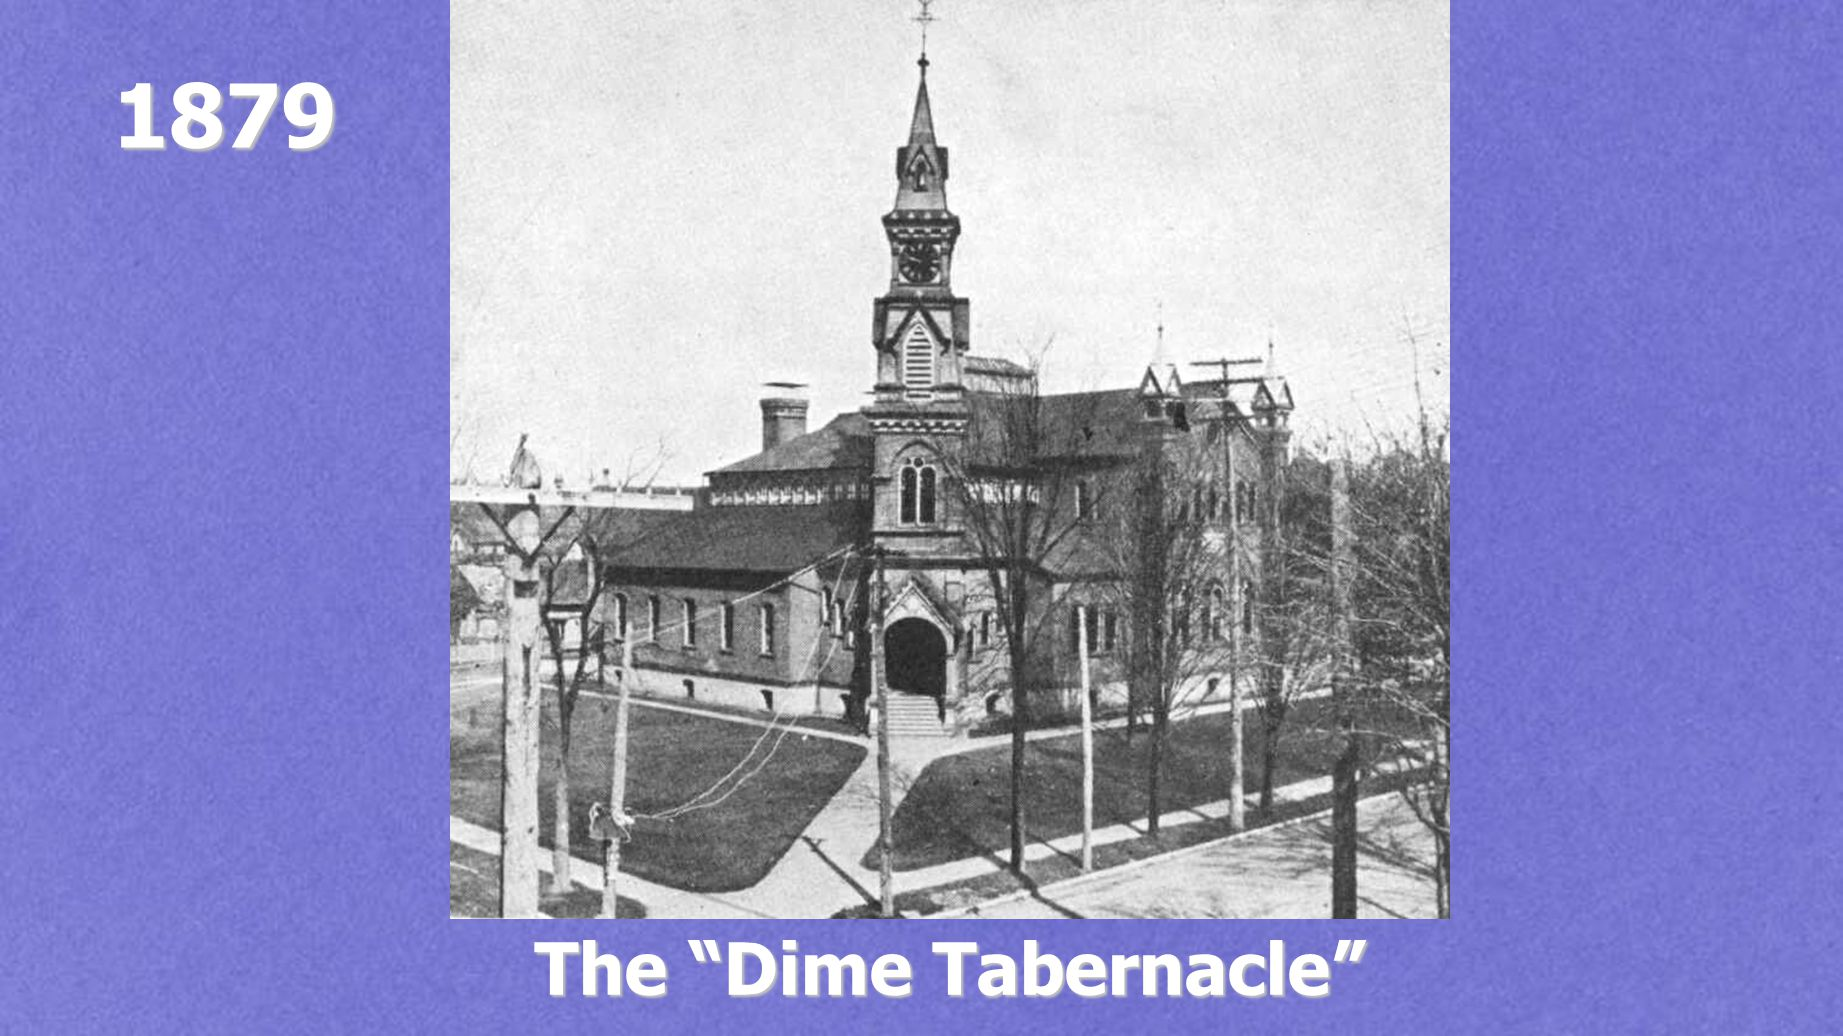 1879 The Dime Tabernacle